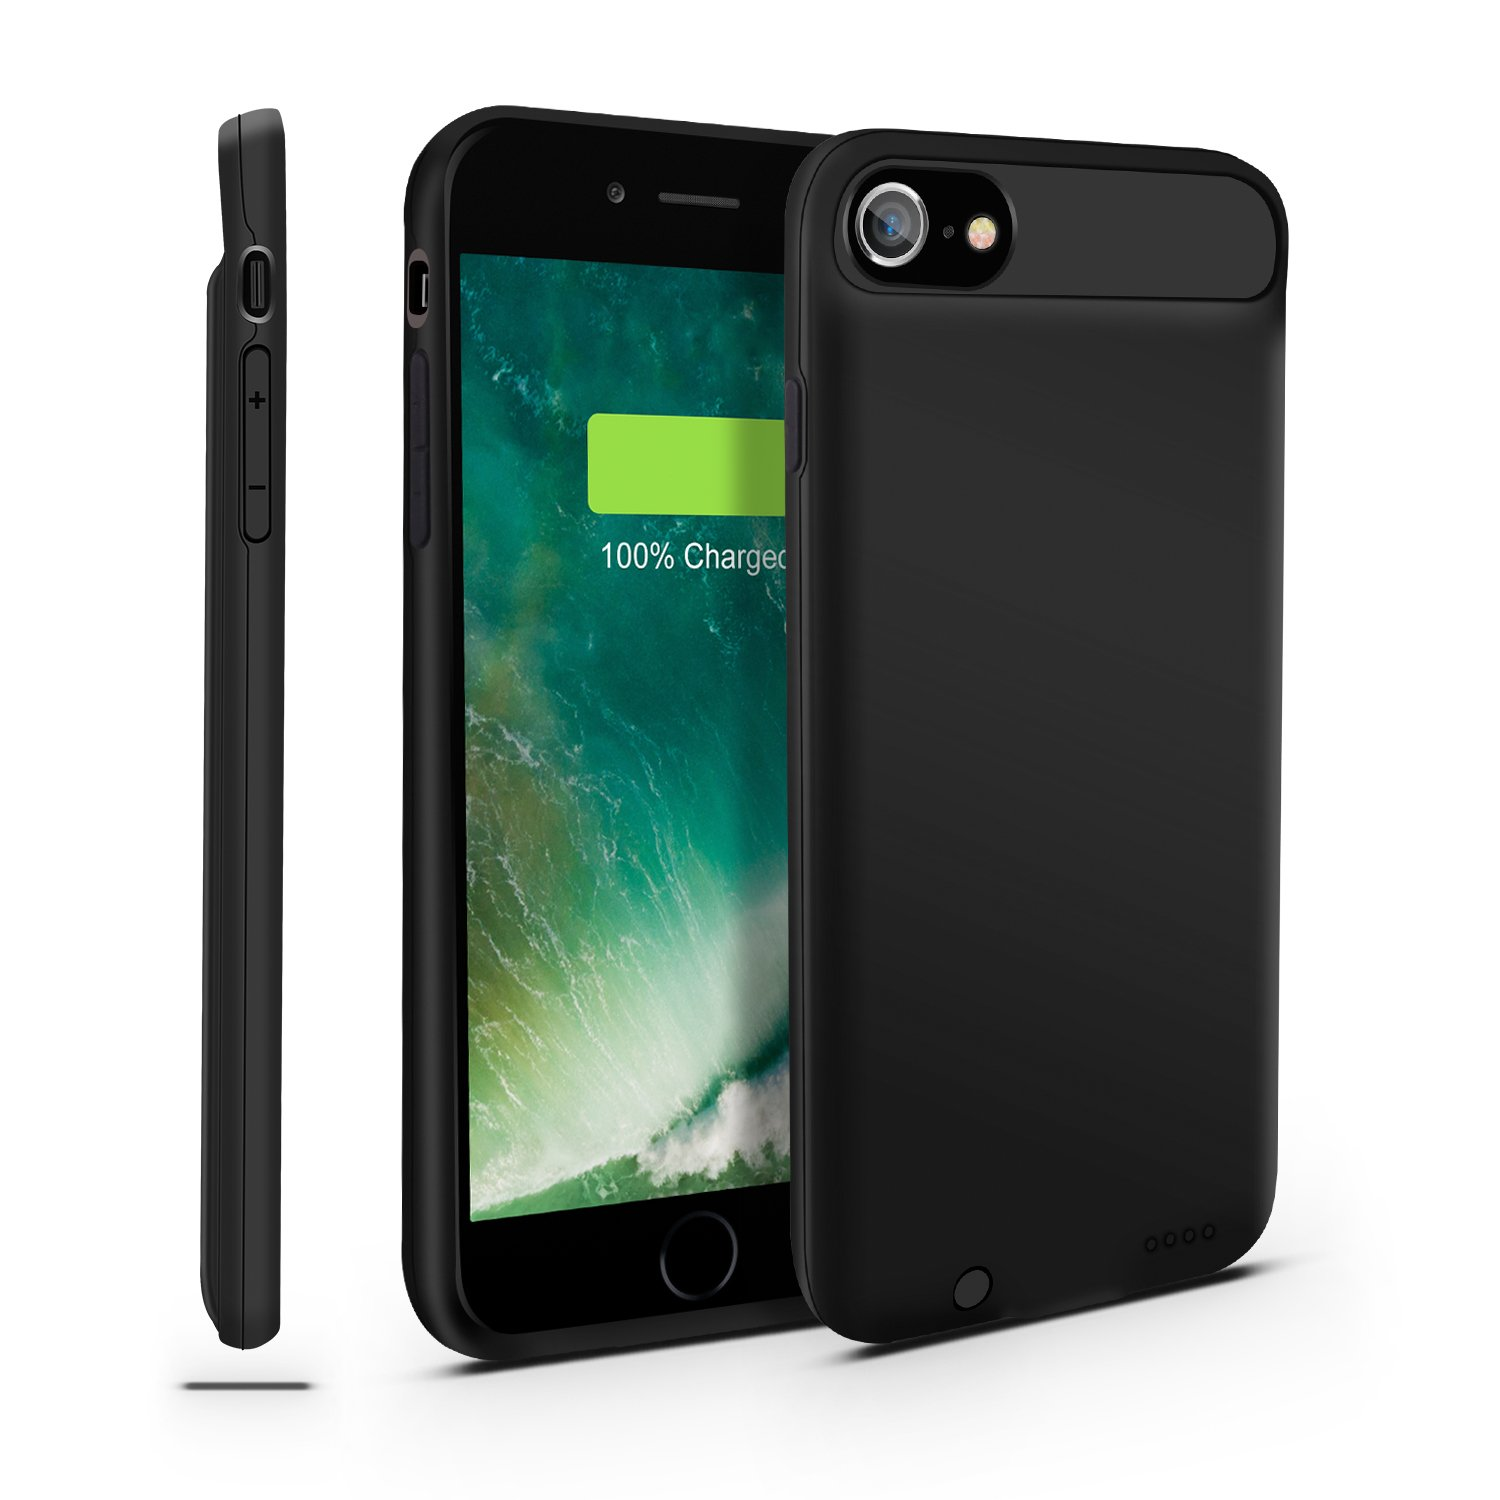 iPhone 7/8 Battery Case, Gright [Can Support Lightning to Lightning Earphone/Microphone] Ultra Slim Portable Charger iPhone 7 (4.7 inch) Charging Case,Extended Battery Pack Juice Bank Cover